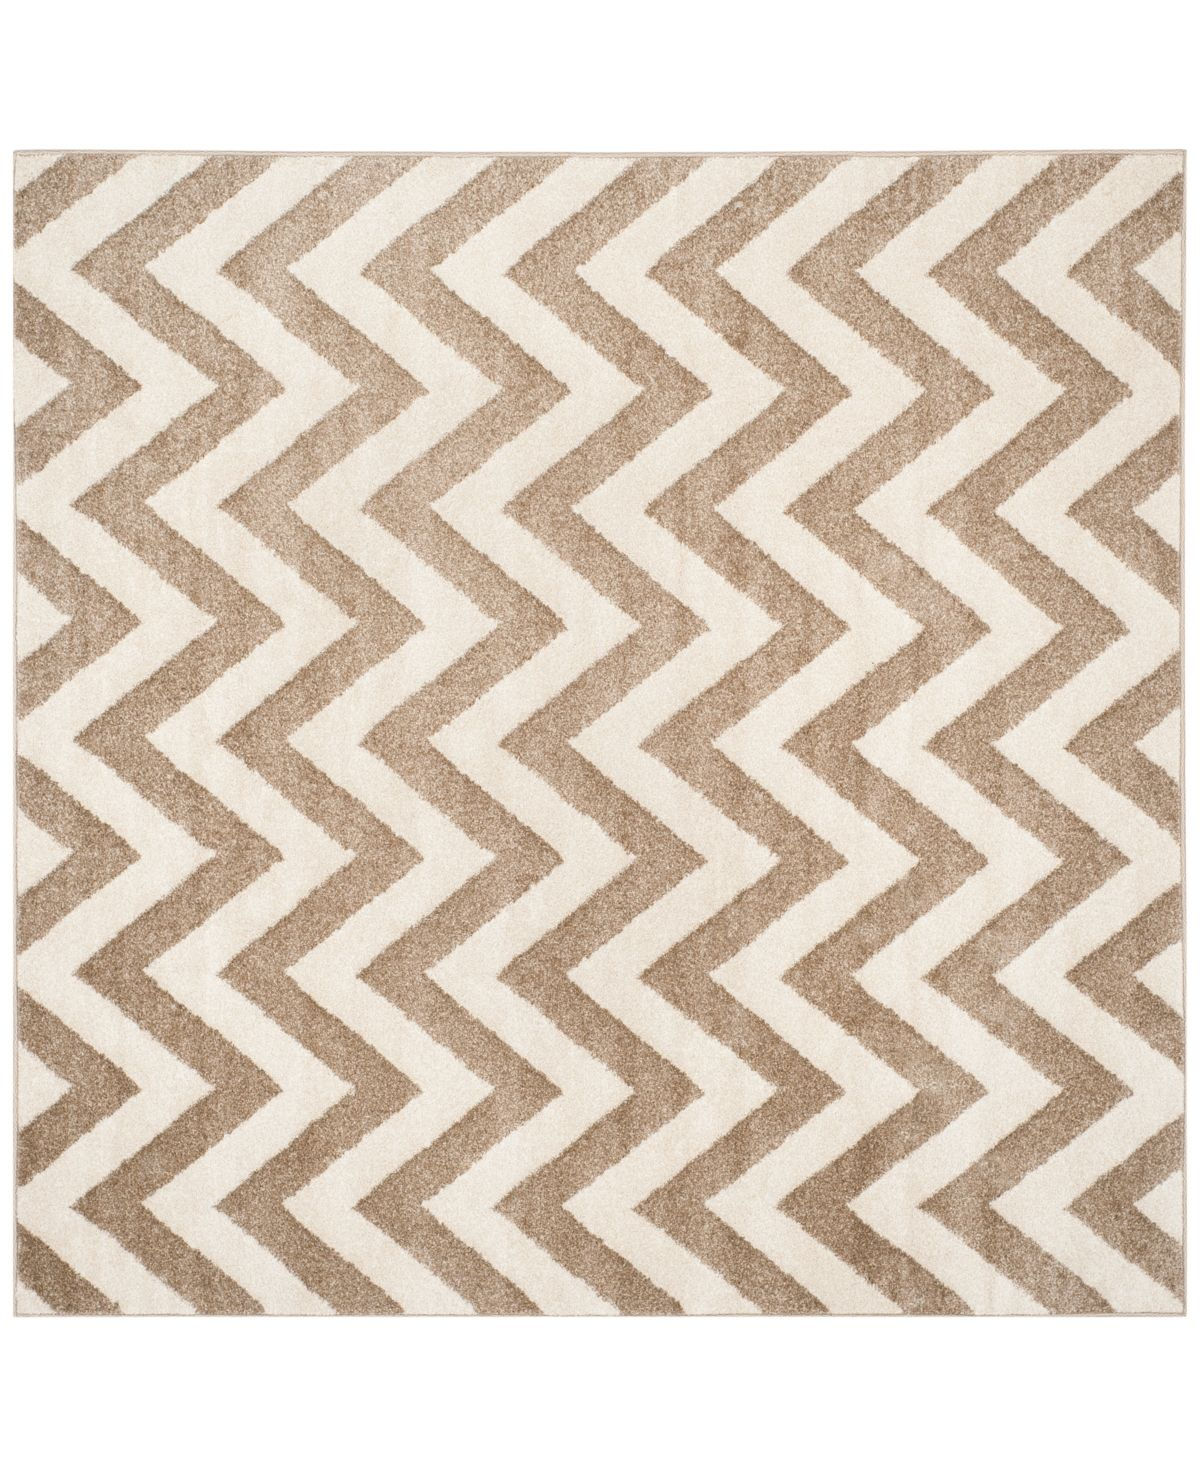 Safavieh Amherst Indoor Outdoor Amt419 7 X 7 Square Area Rug